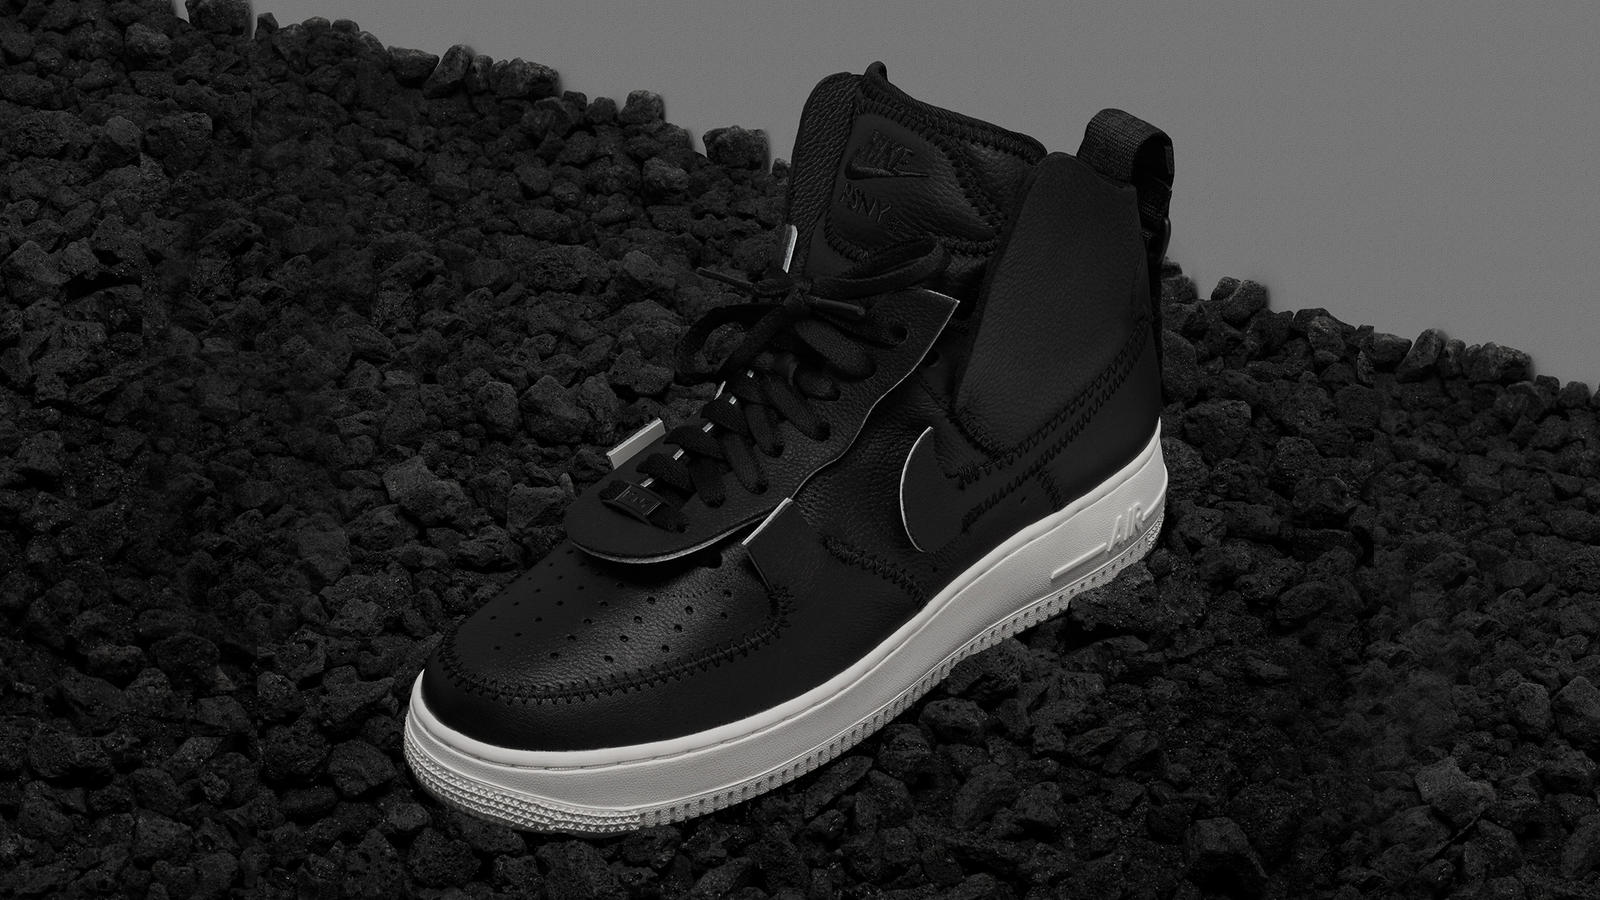 nike-air-force-1-high-psny-black-release-20180905